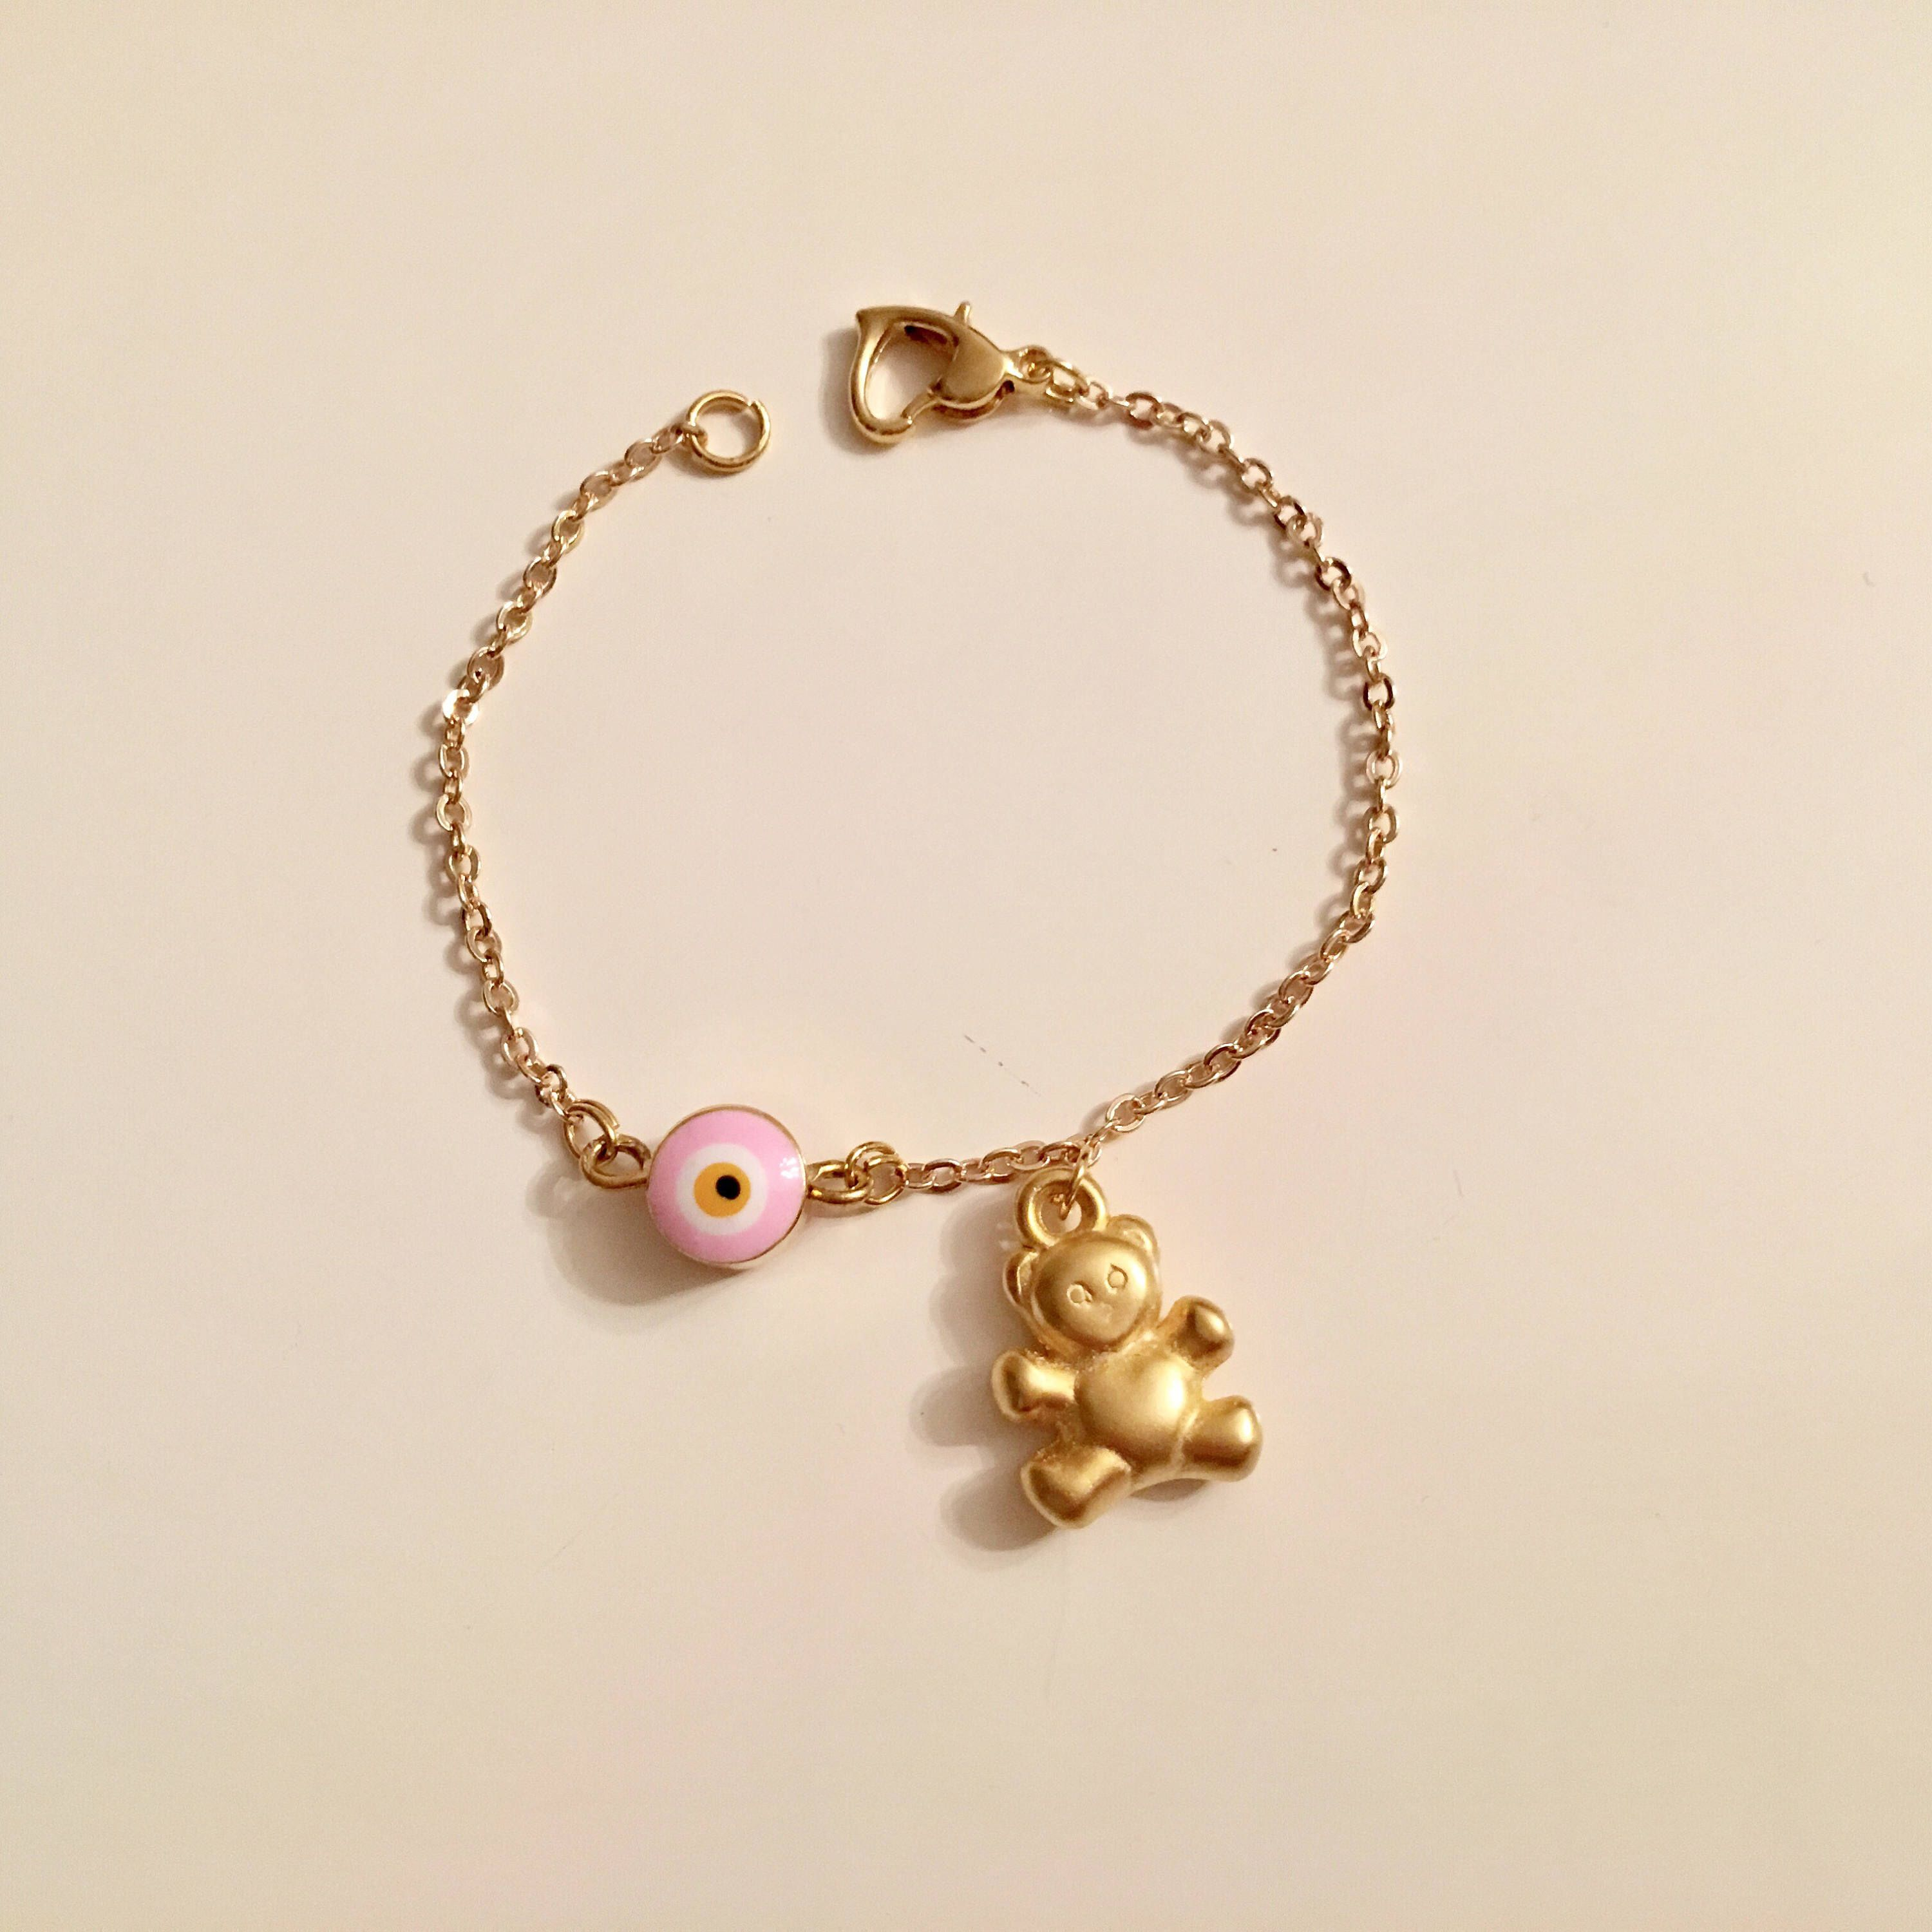 Excited To Share This Item From My Etsy Pink Evil Eye Bear Charm Bracelet Amulet Gold Anklet Ankle Kids Jewelry Toddler